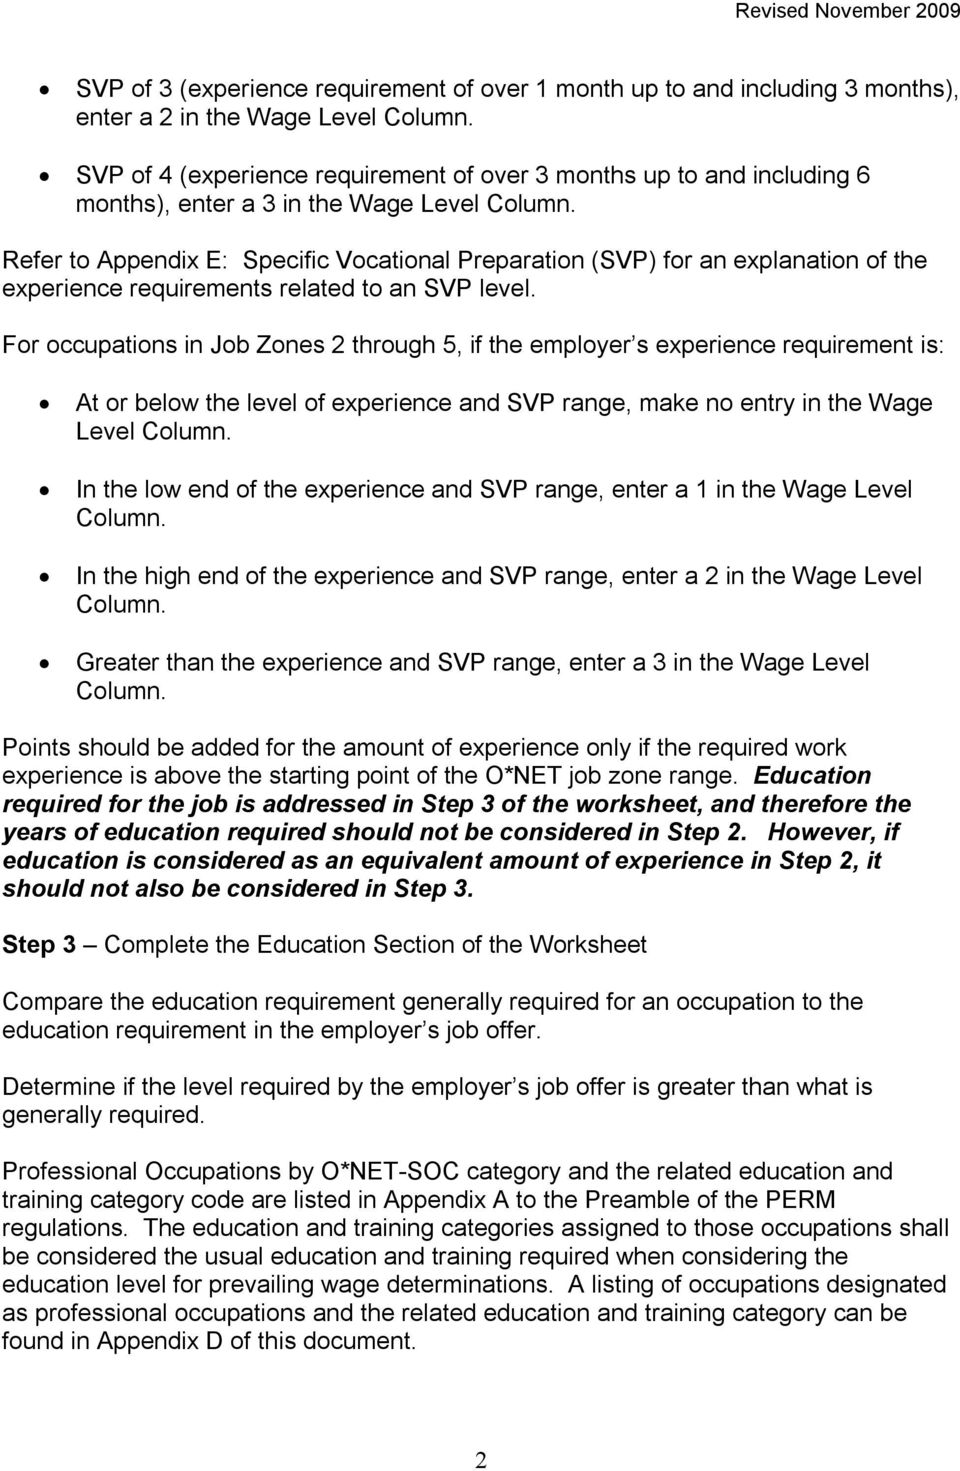 Refer to Appendix E: Specific Vocational Preparation (SVP) for an explanation of the experience requirements related to an SVP level.